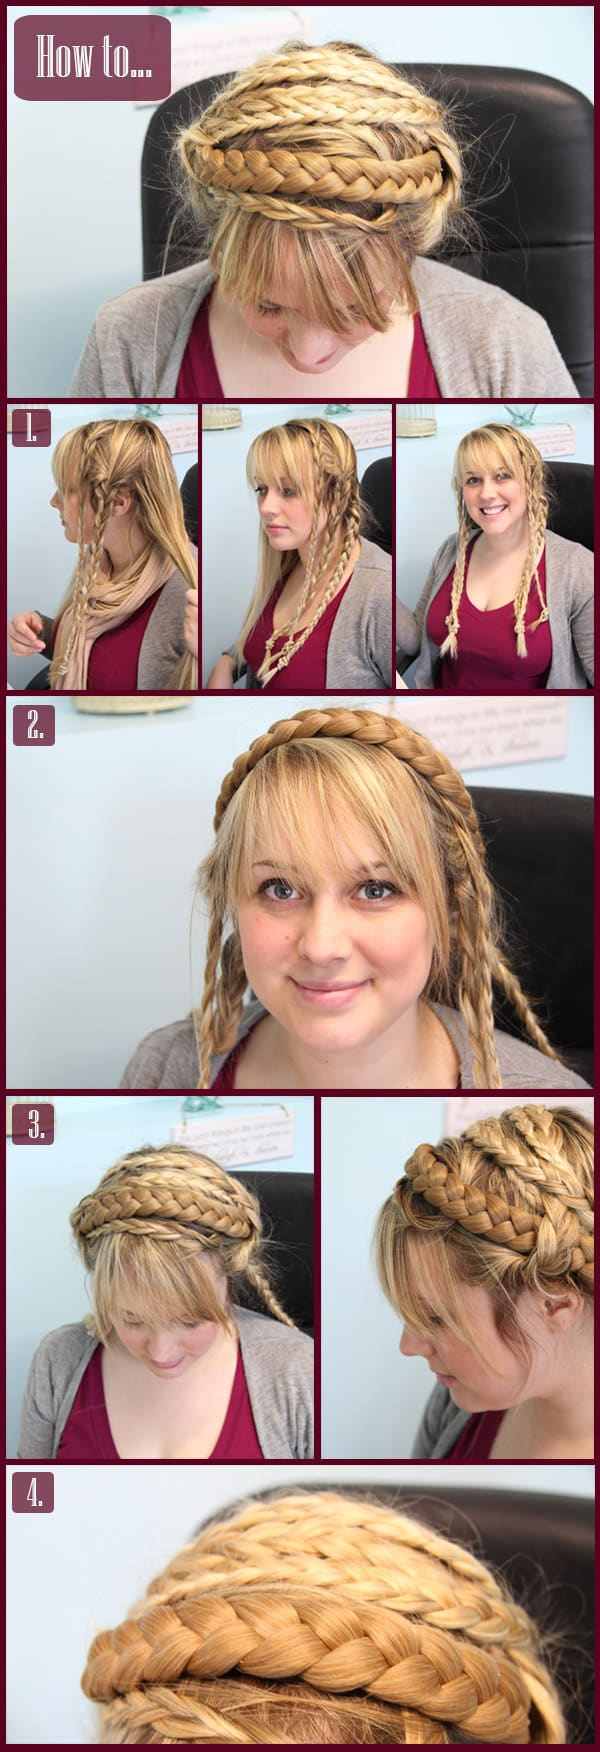 How To Braided Up